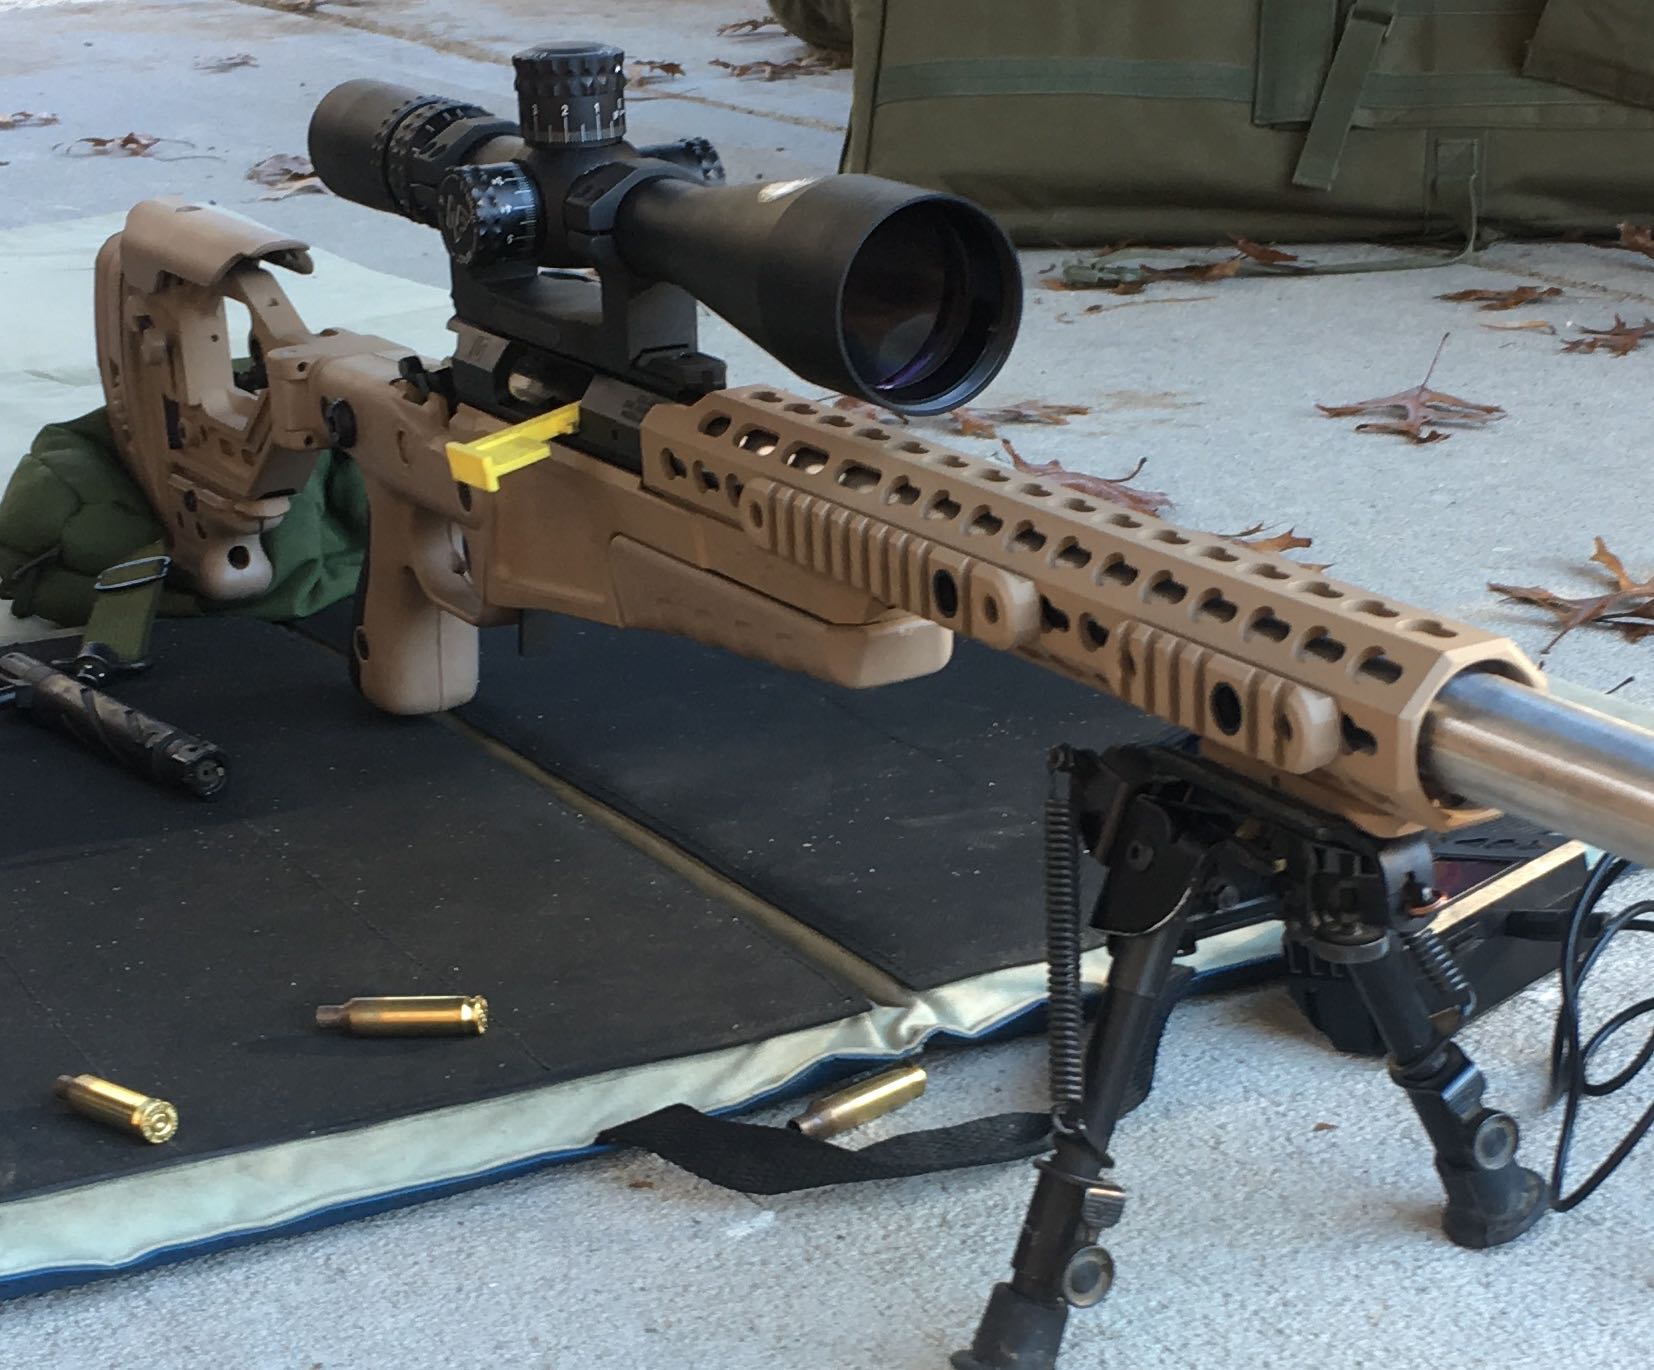 u300-aics-ax-chassis-nf-6-creed-on-firing-line